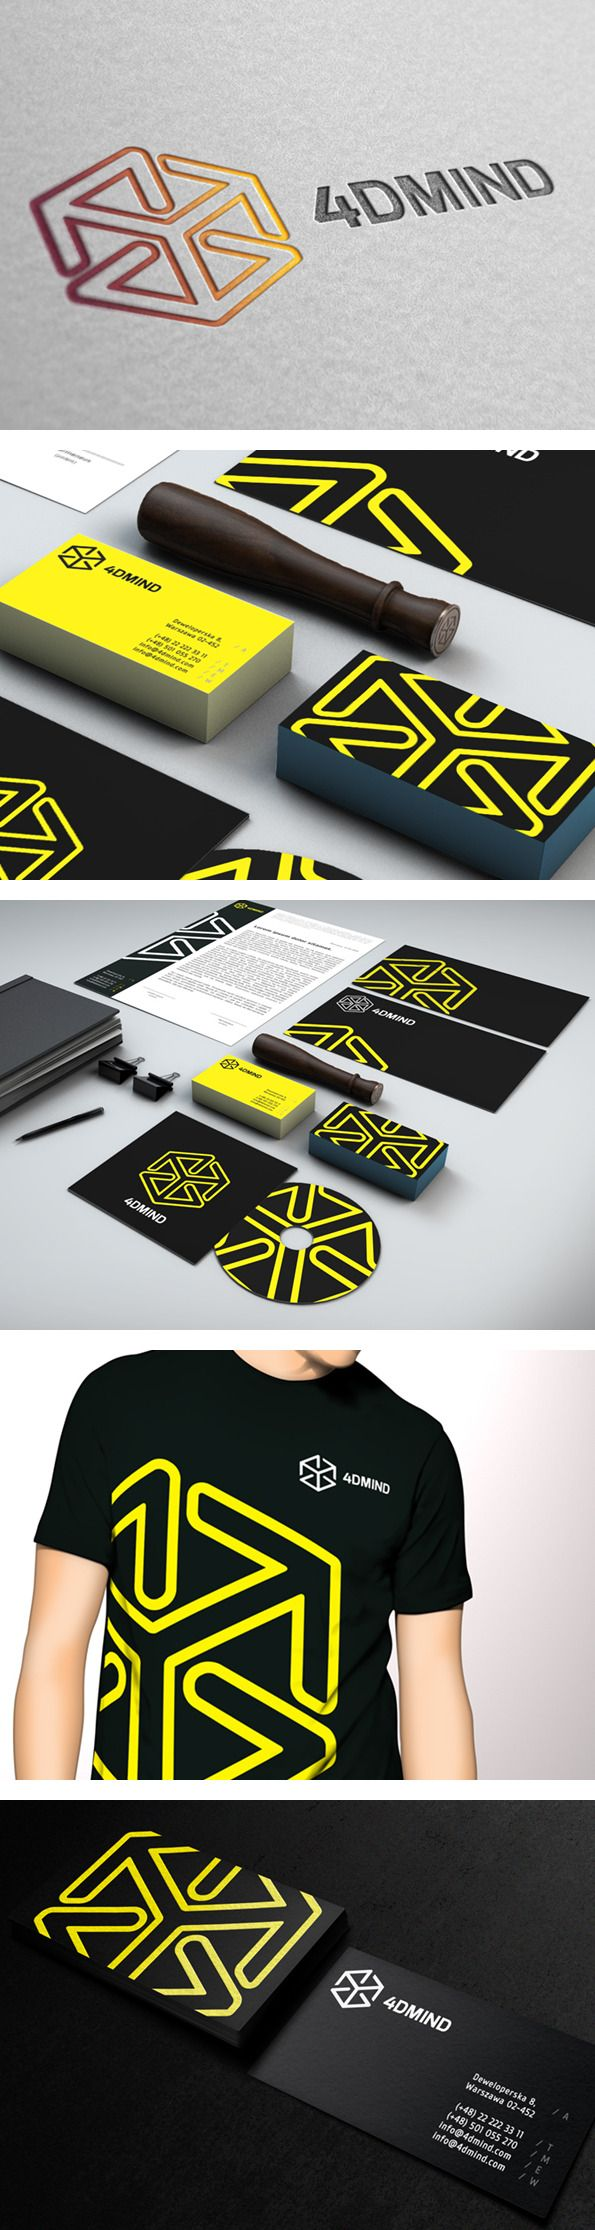 4DMIND identity by Elastika | #stationary #corporate #design #corporatedesign #identity #branding #marketing < repinned by www.BlickeDeeler.de | Visit our website: www.blickedeeler.de/leistungen/corporate-design